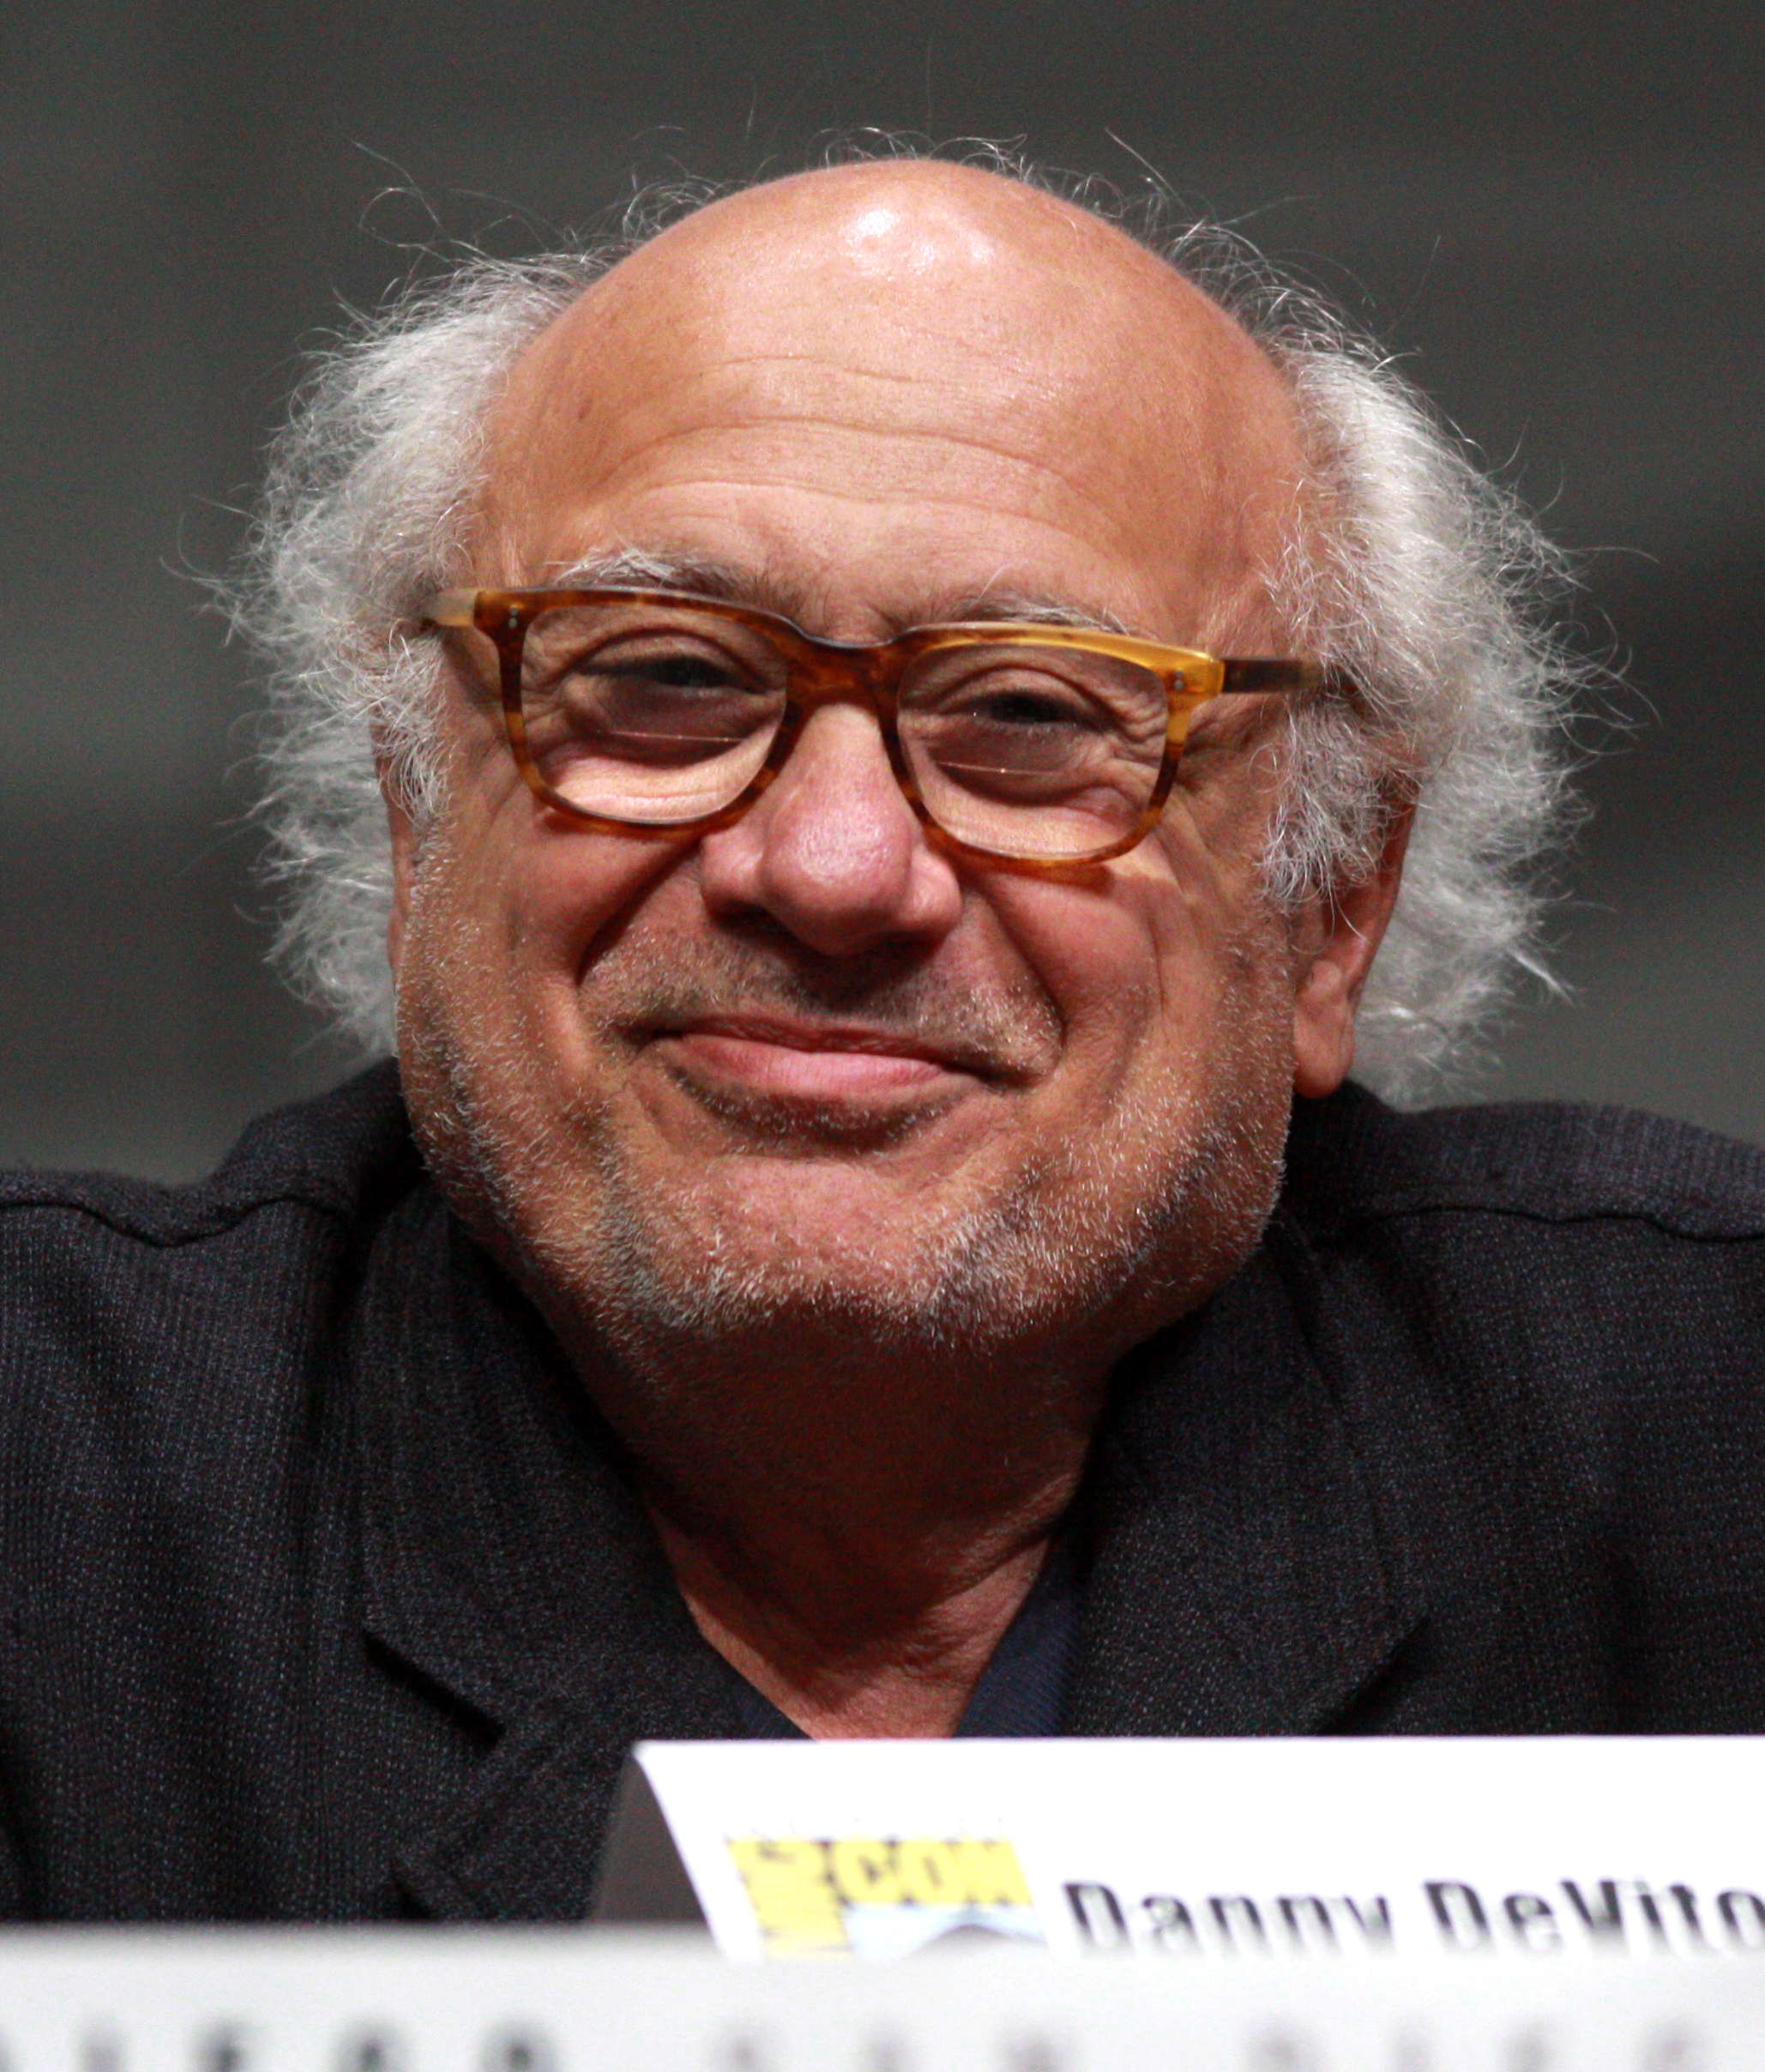 Danny DeVito by Gage S...